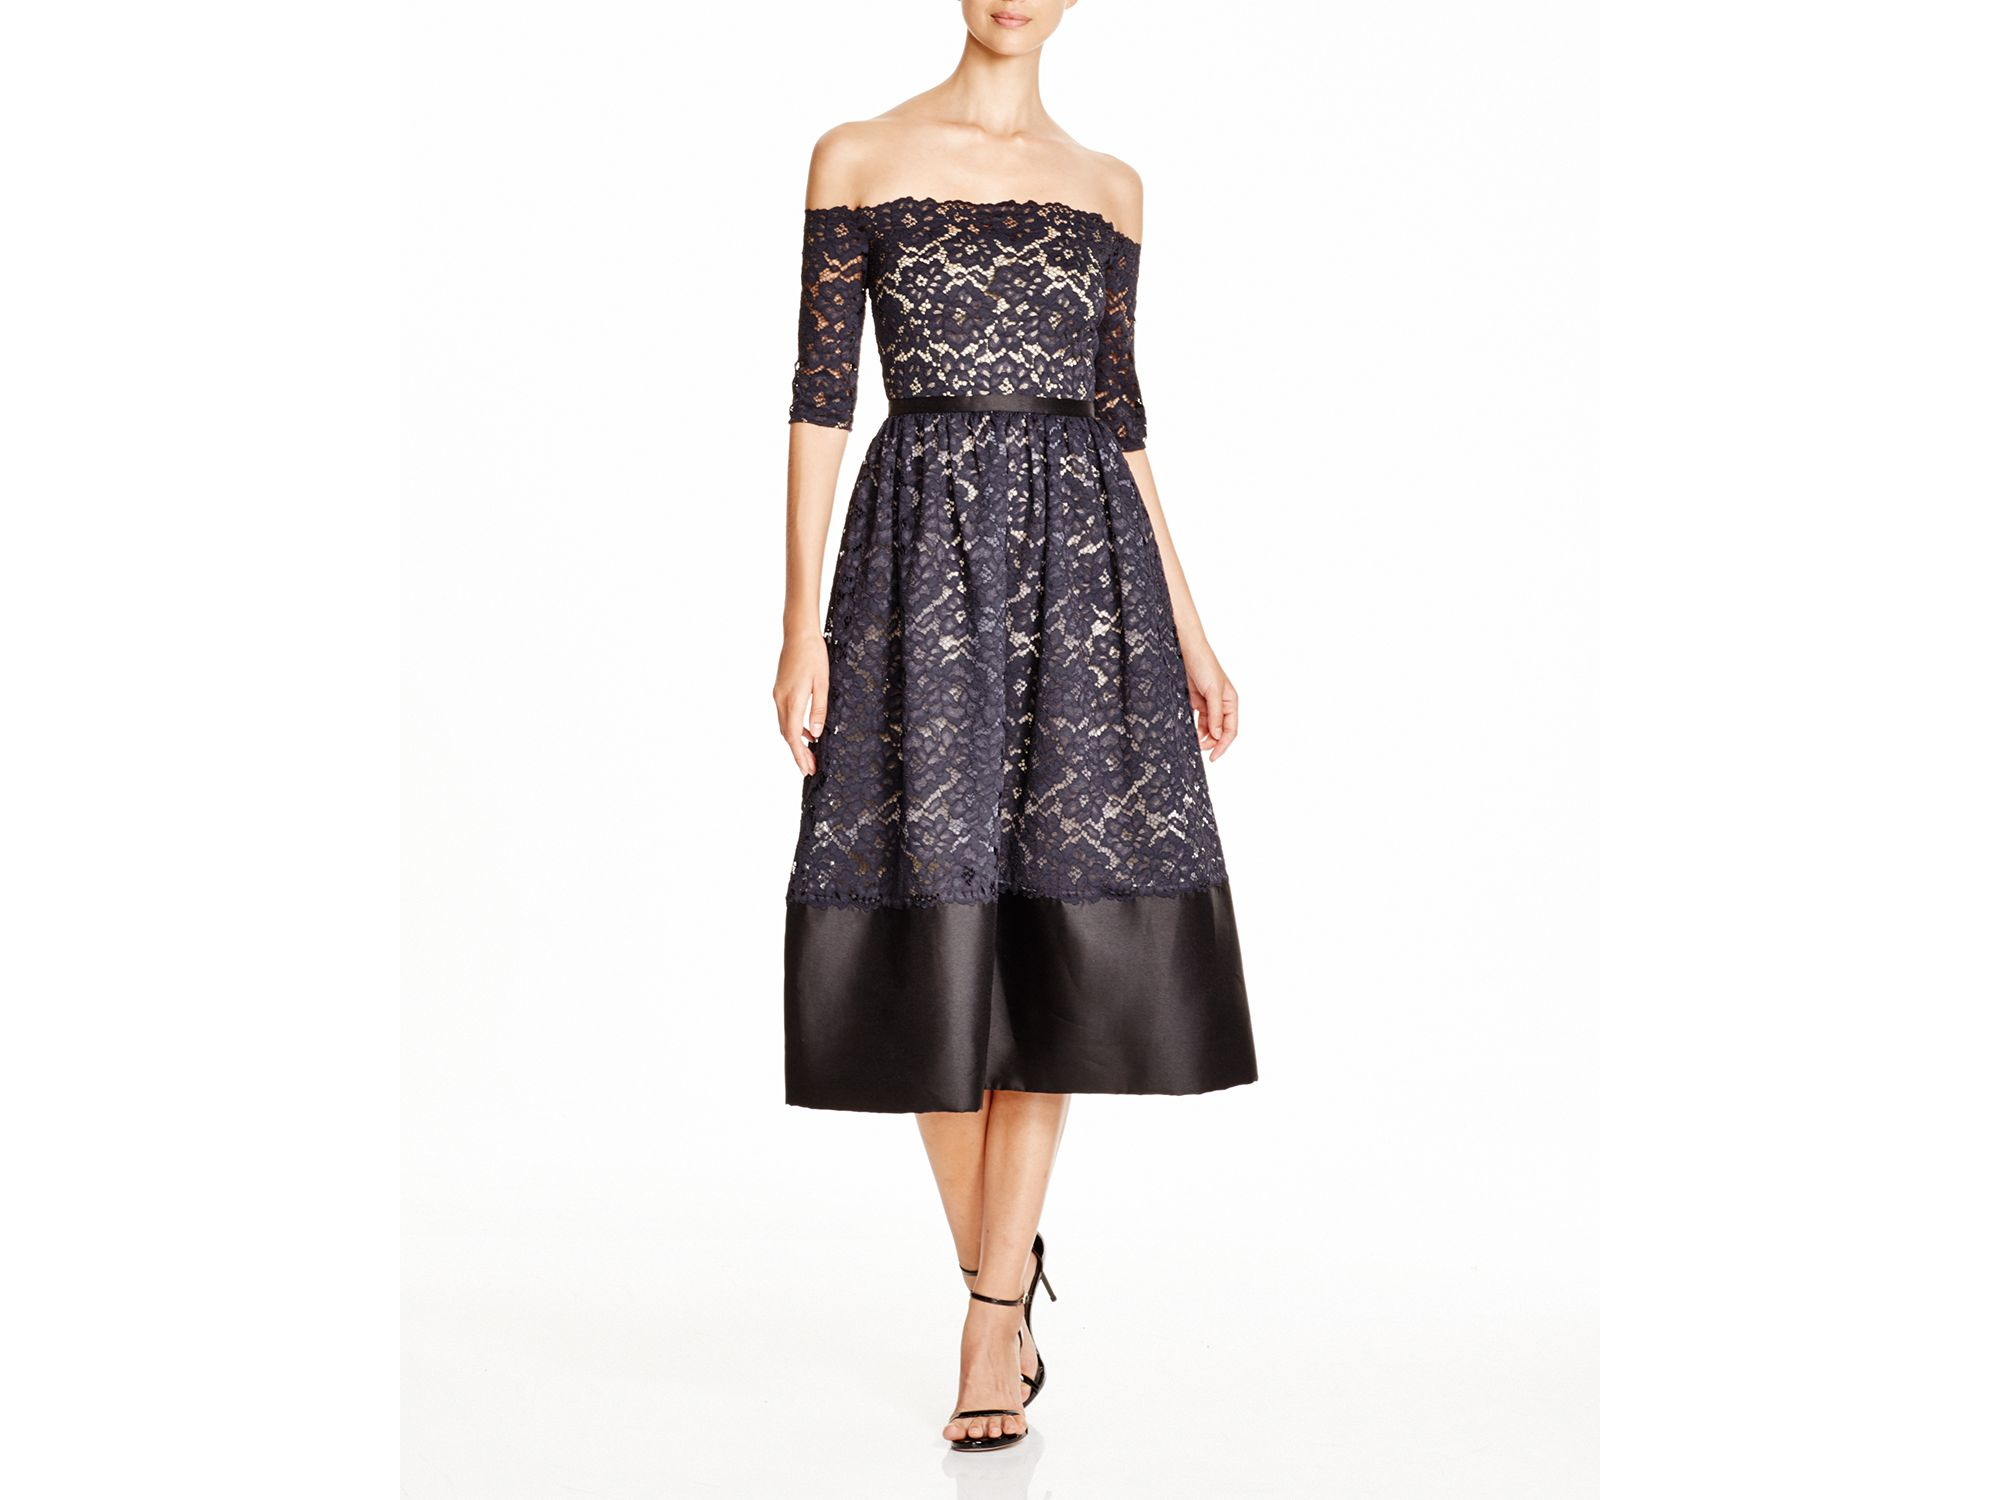 Lyst - Ml monique lhuillier Ml Monique Lhuiller Off-the-shoulder ...